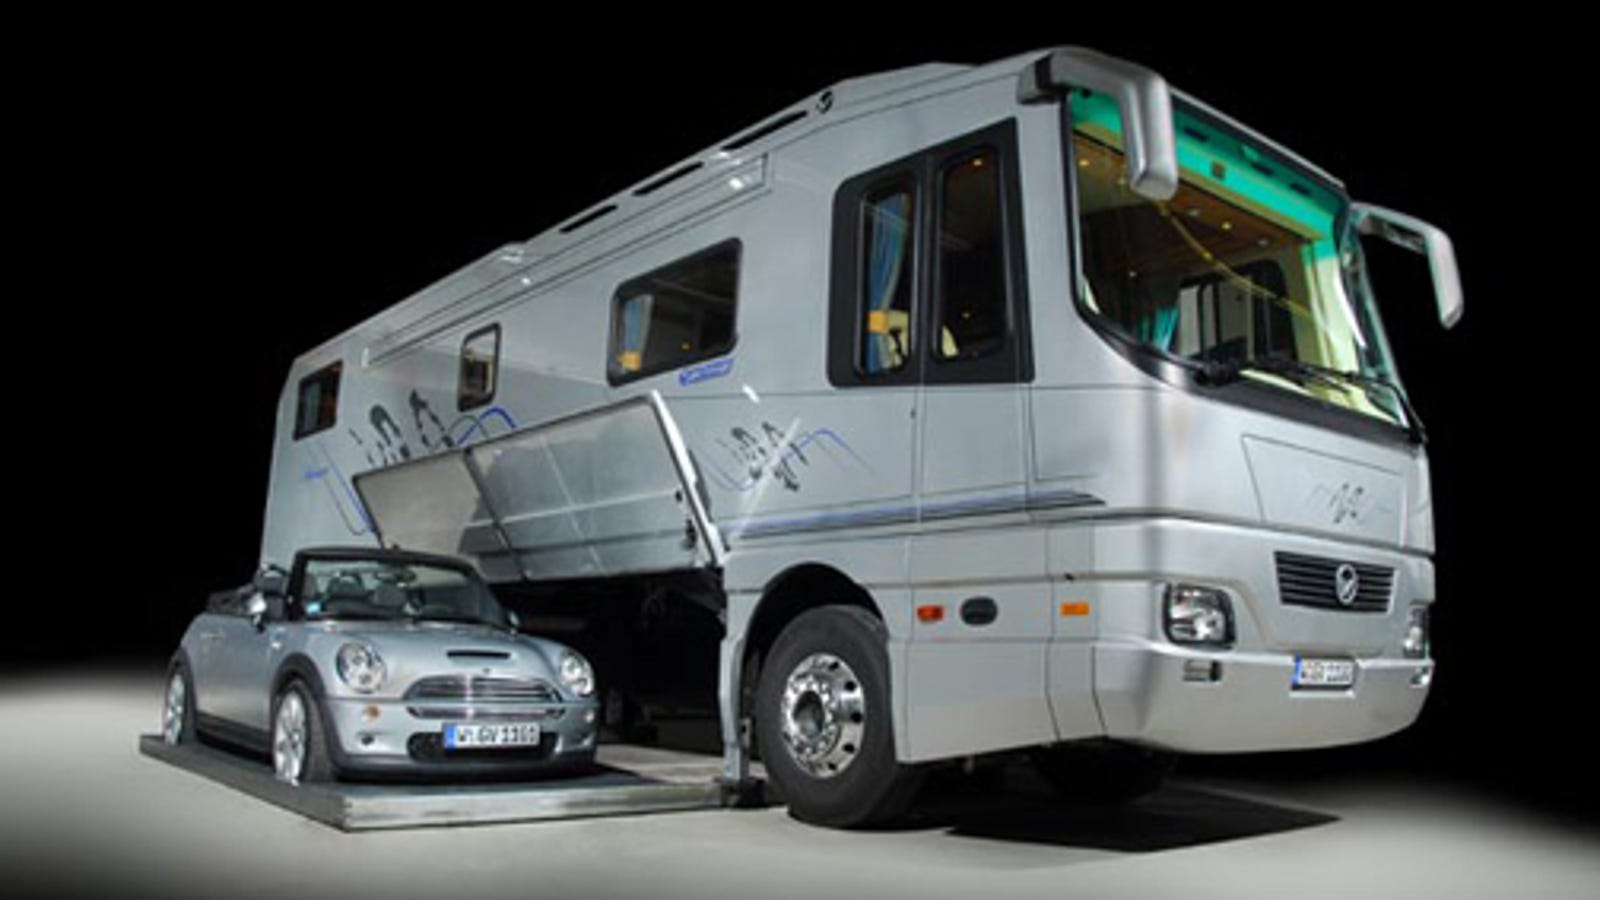 Volkner Mobil Car Carrying Motor Home Could Be Yours For